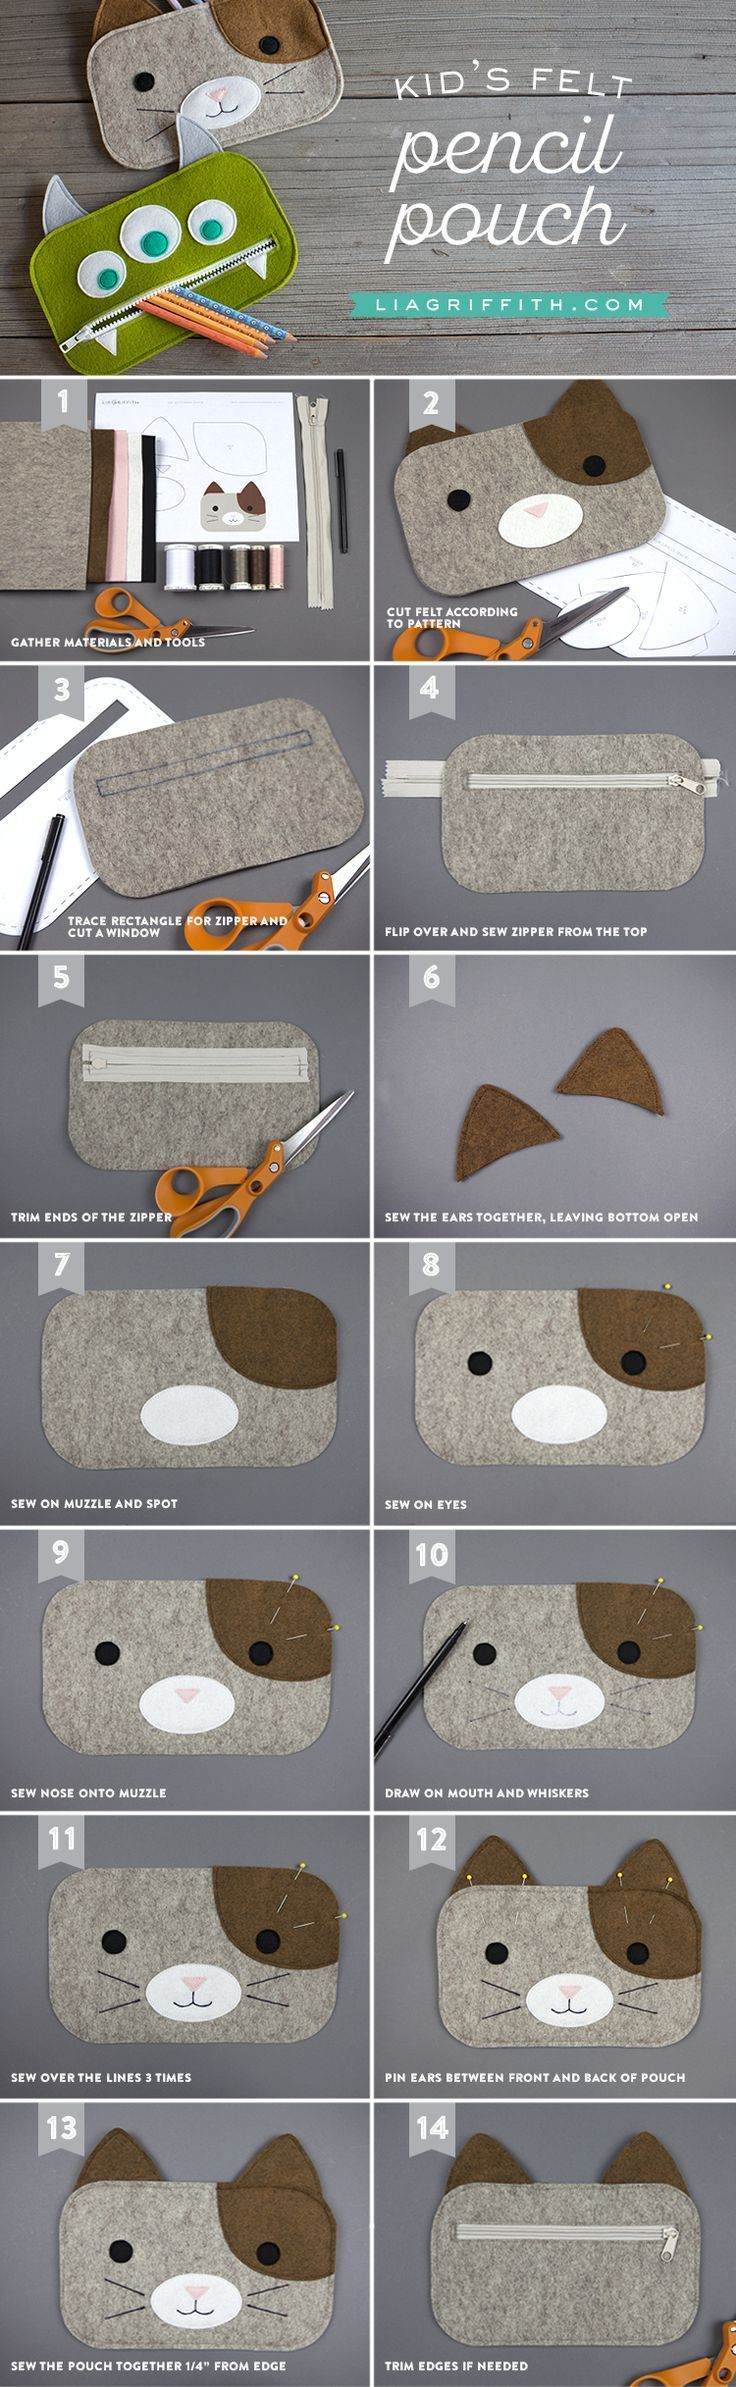 Get back-to-school ready with our template and tutorial to make zippered DIY pencil pouches! Our designs include a cute kitty and three-eyed green monster